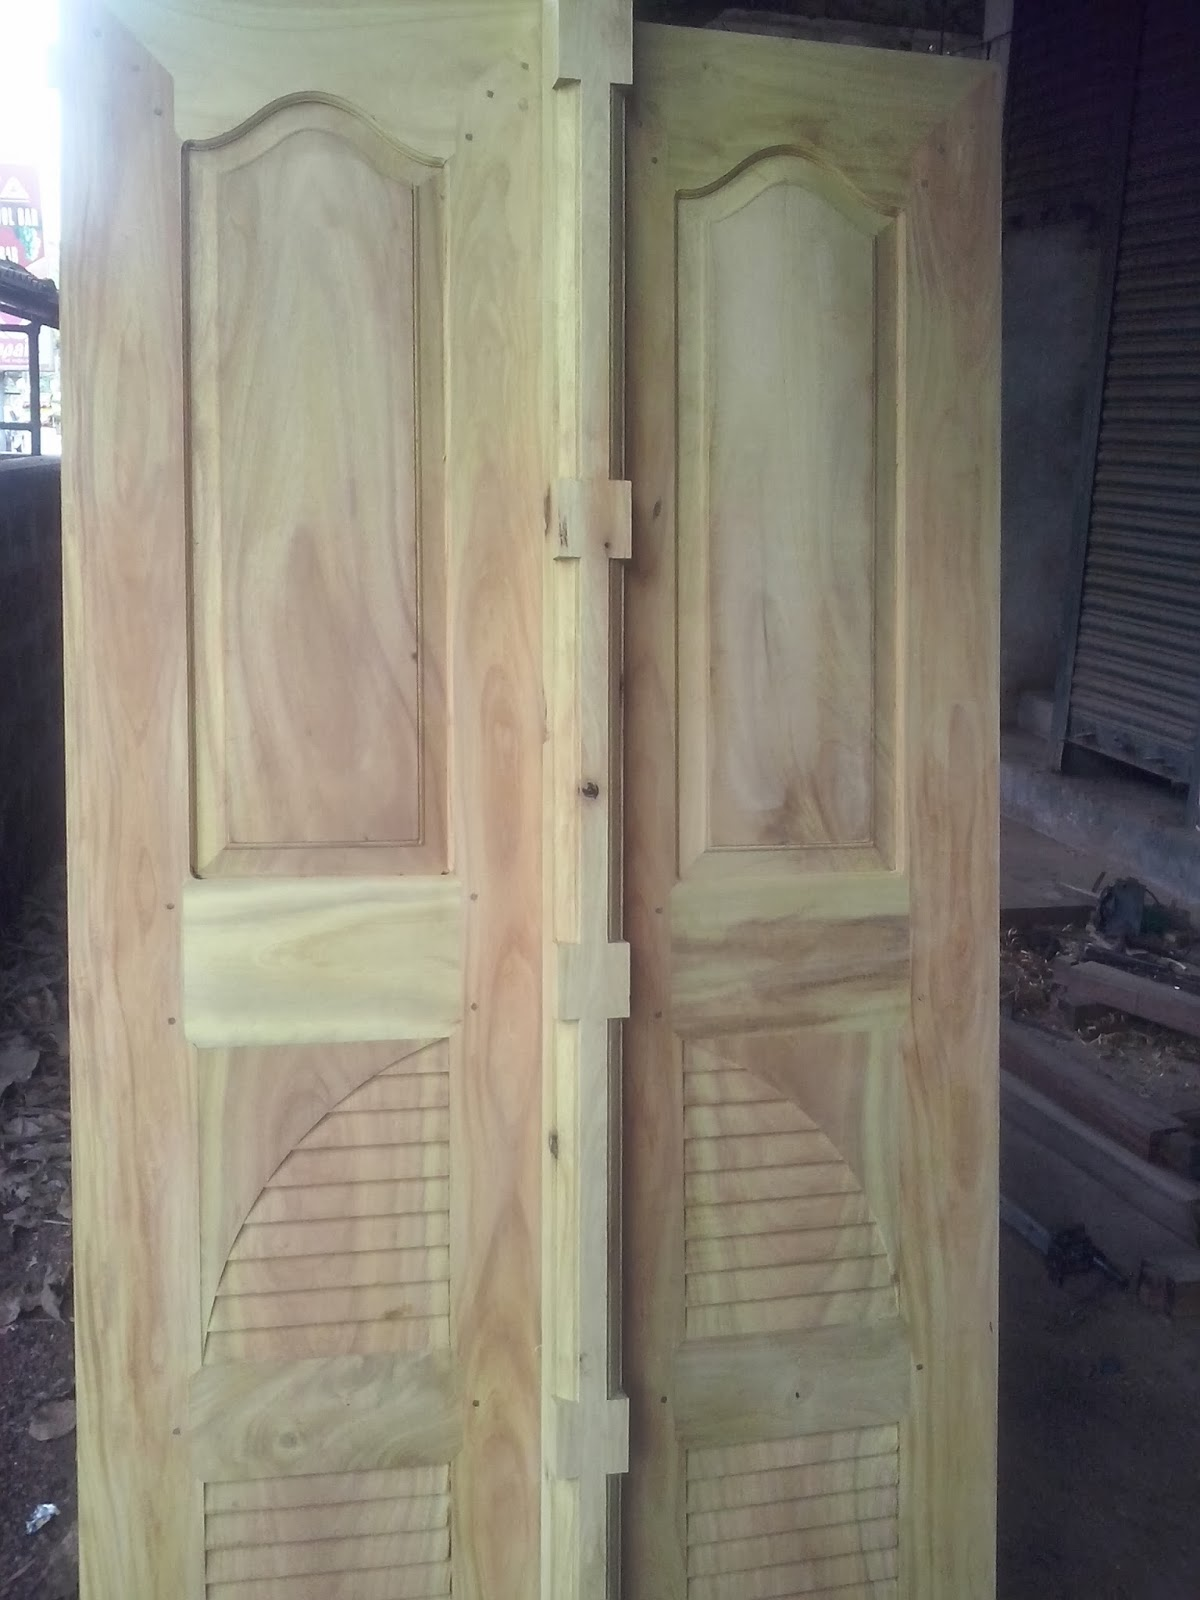 Bavas wood works main entrance wooden double door designs for Double door designs for home